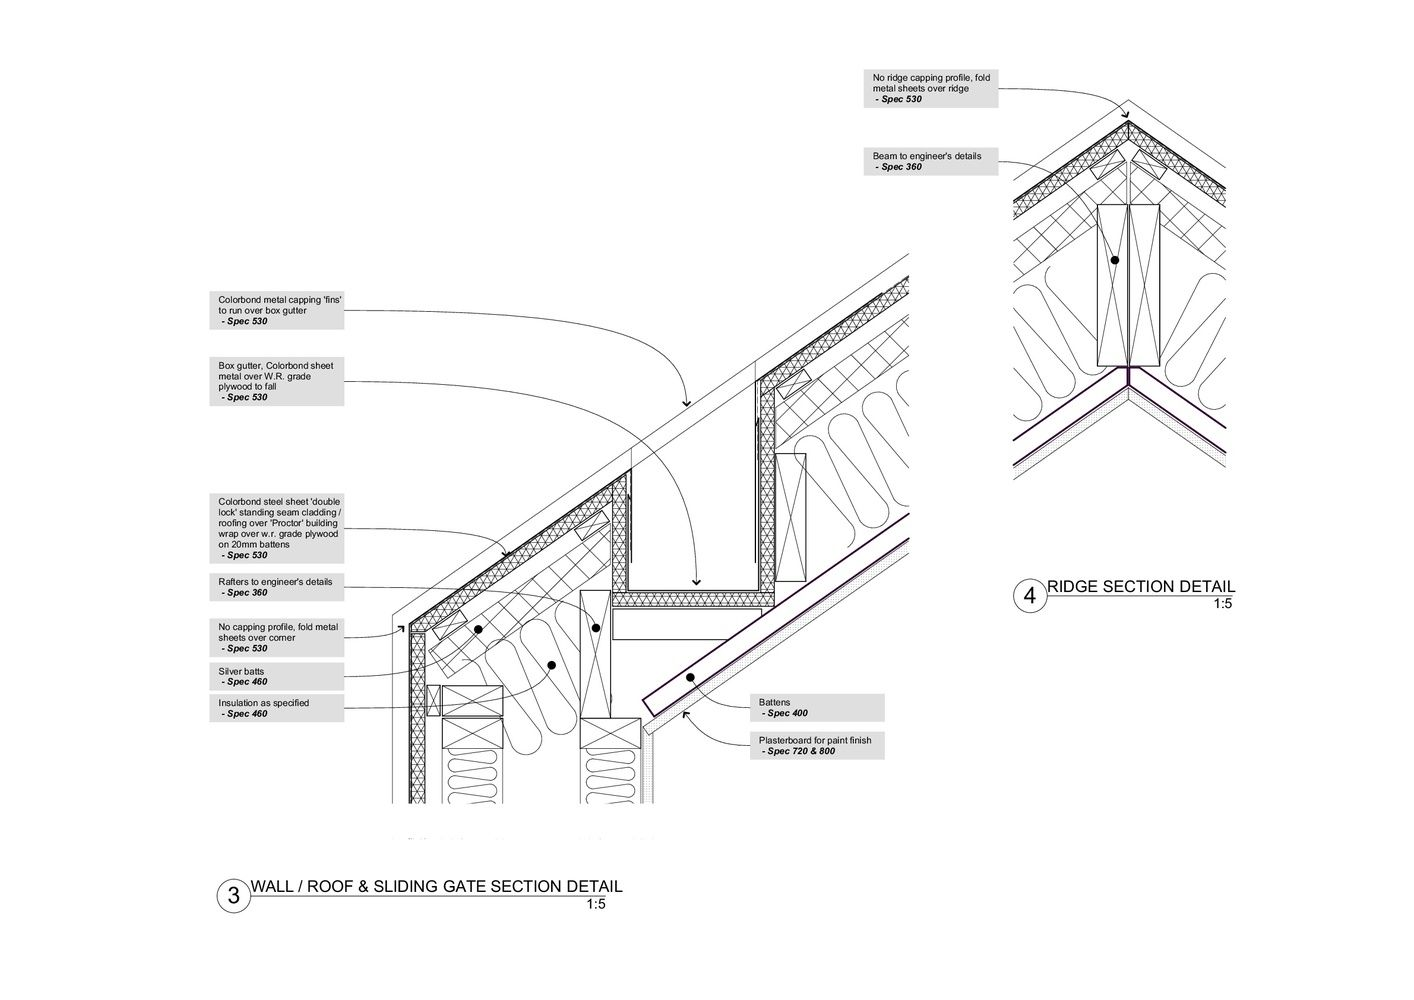 Gallery Of The Shadow House Nic Owen Architects 25 Roof Cladding Roof Detail Architecture Details